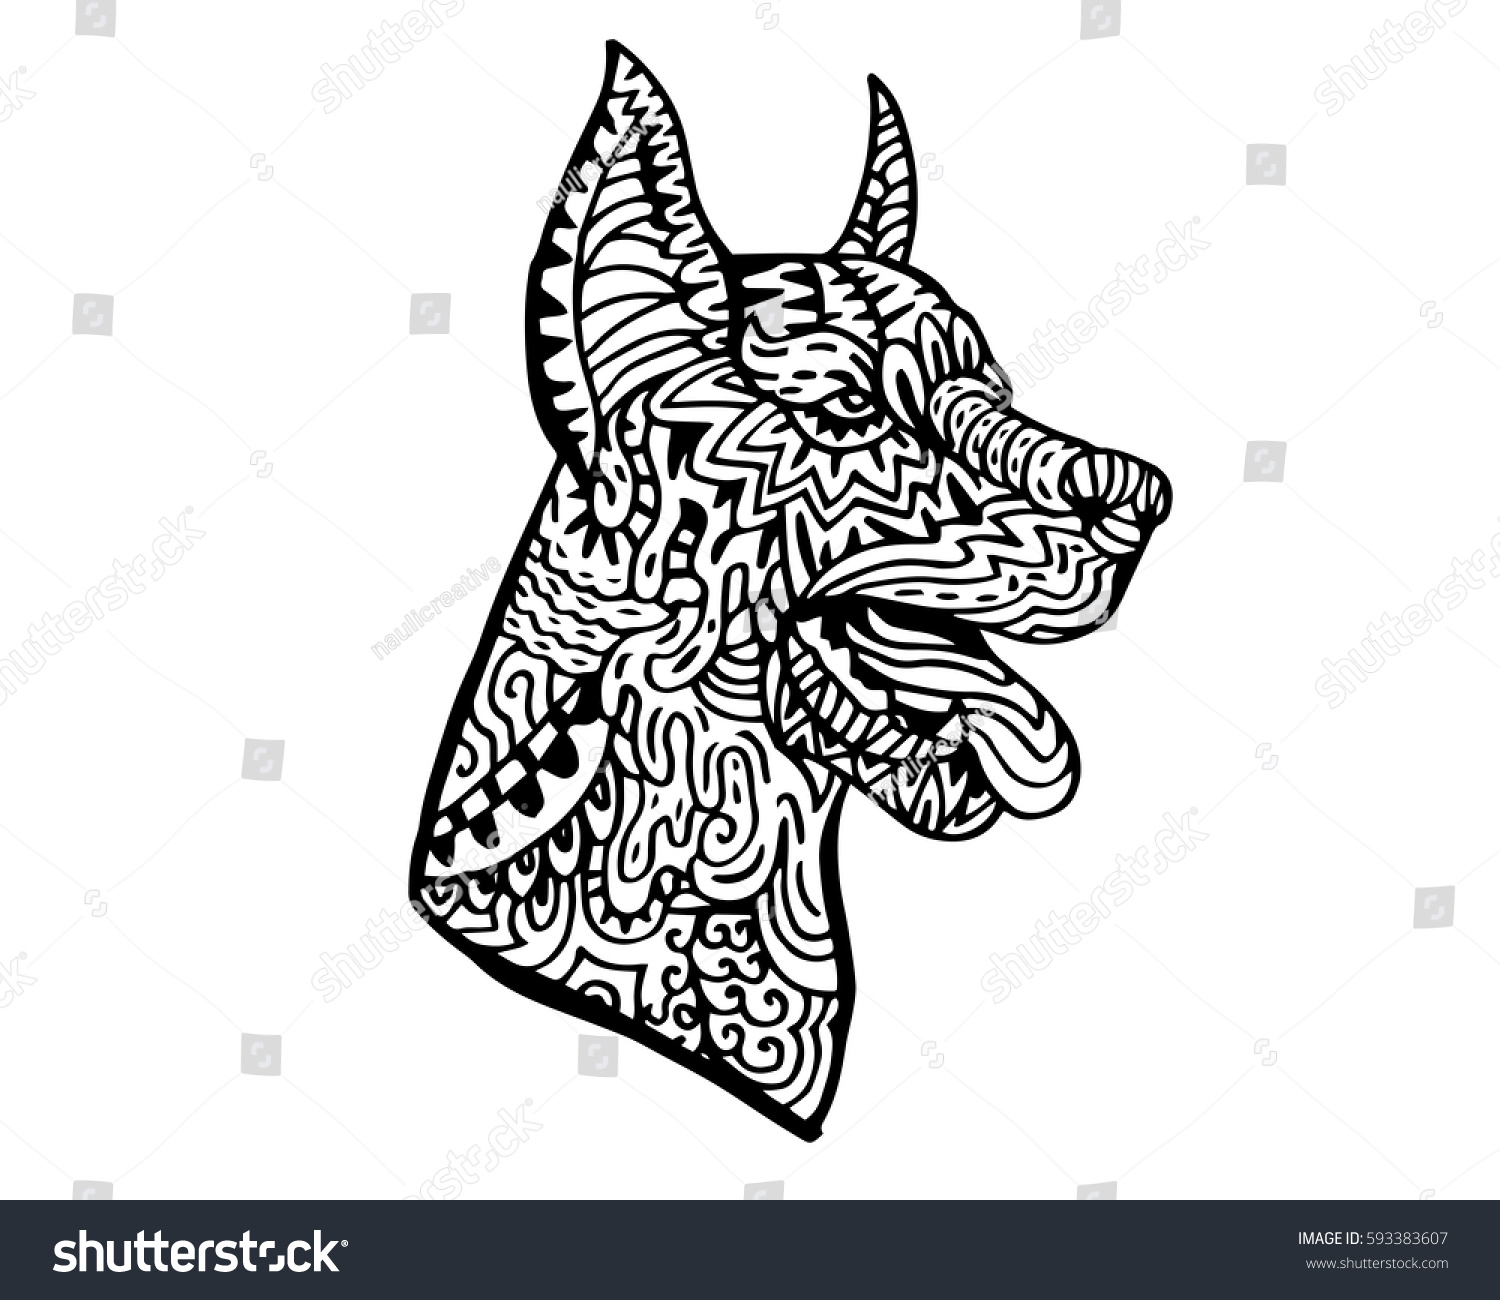 Stock vector ethnic animal doodle detail pattern killer whale - Ethnic Detail Zen Tangle Dog Doodle Illustration For Coloring Book Tattoo Sticker Shirt